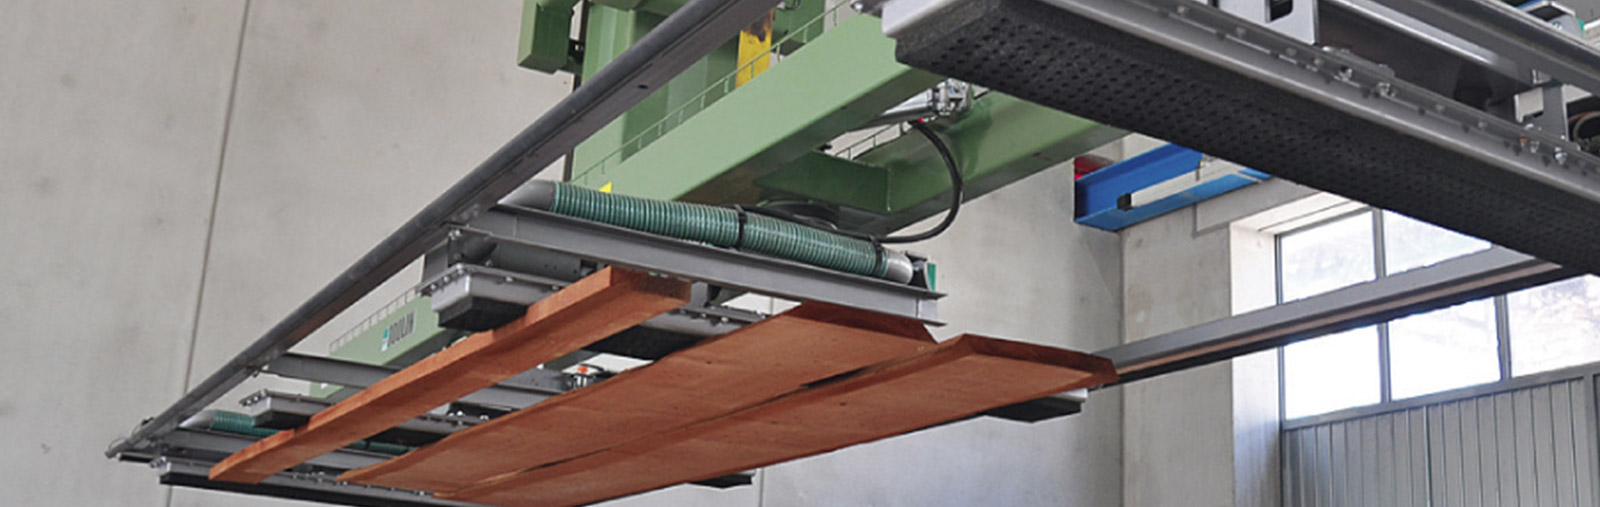 JOULIN : Innovative solutions for your handling projects